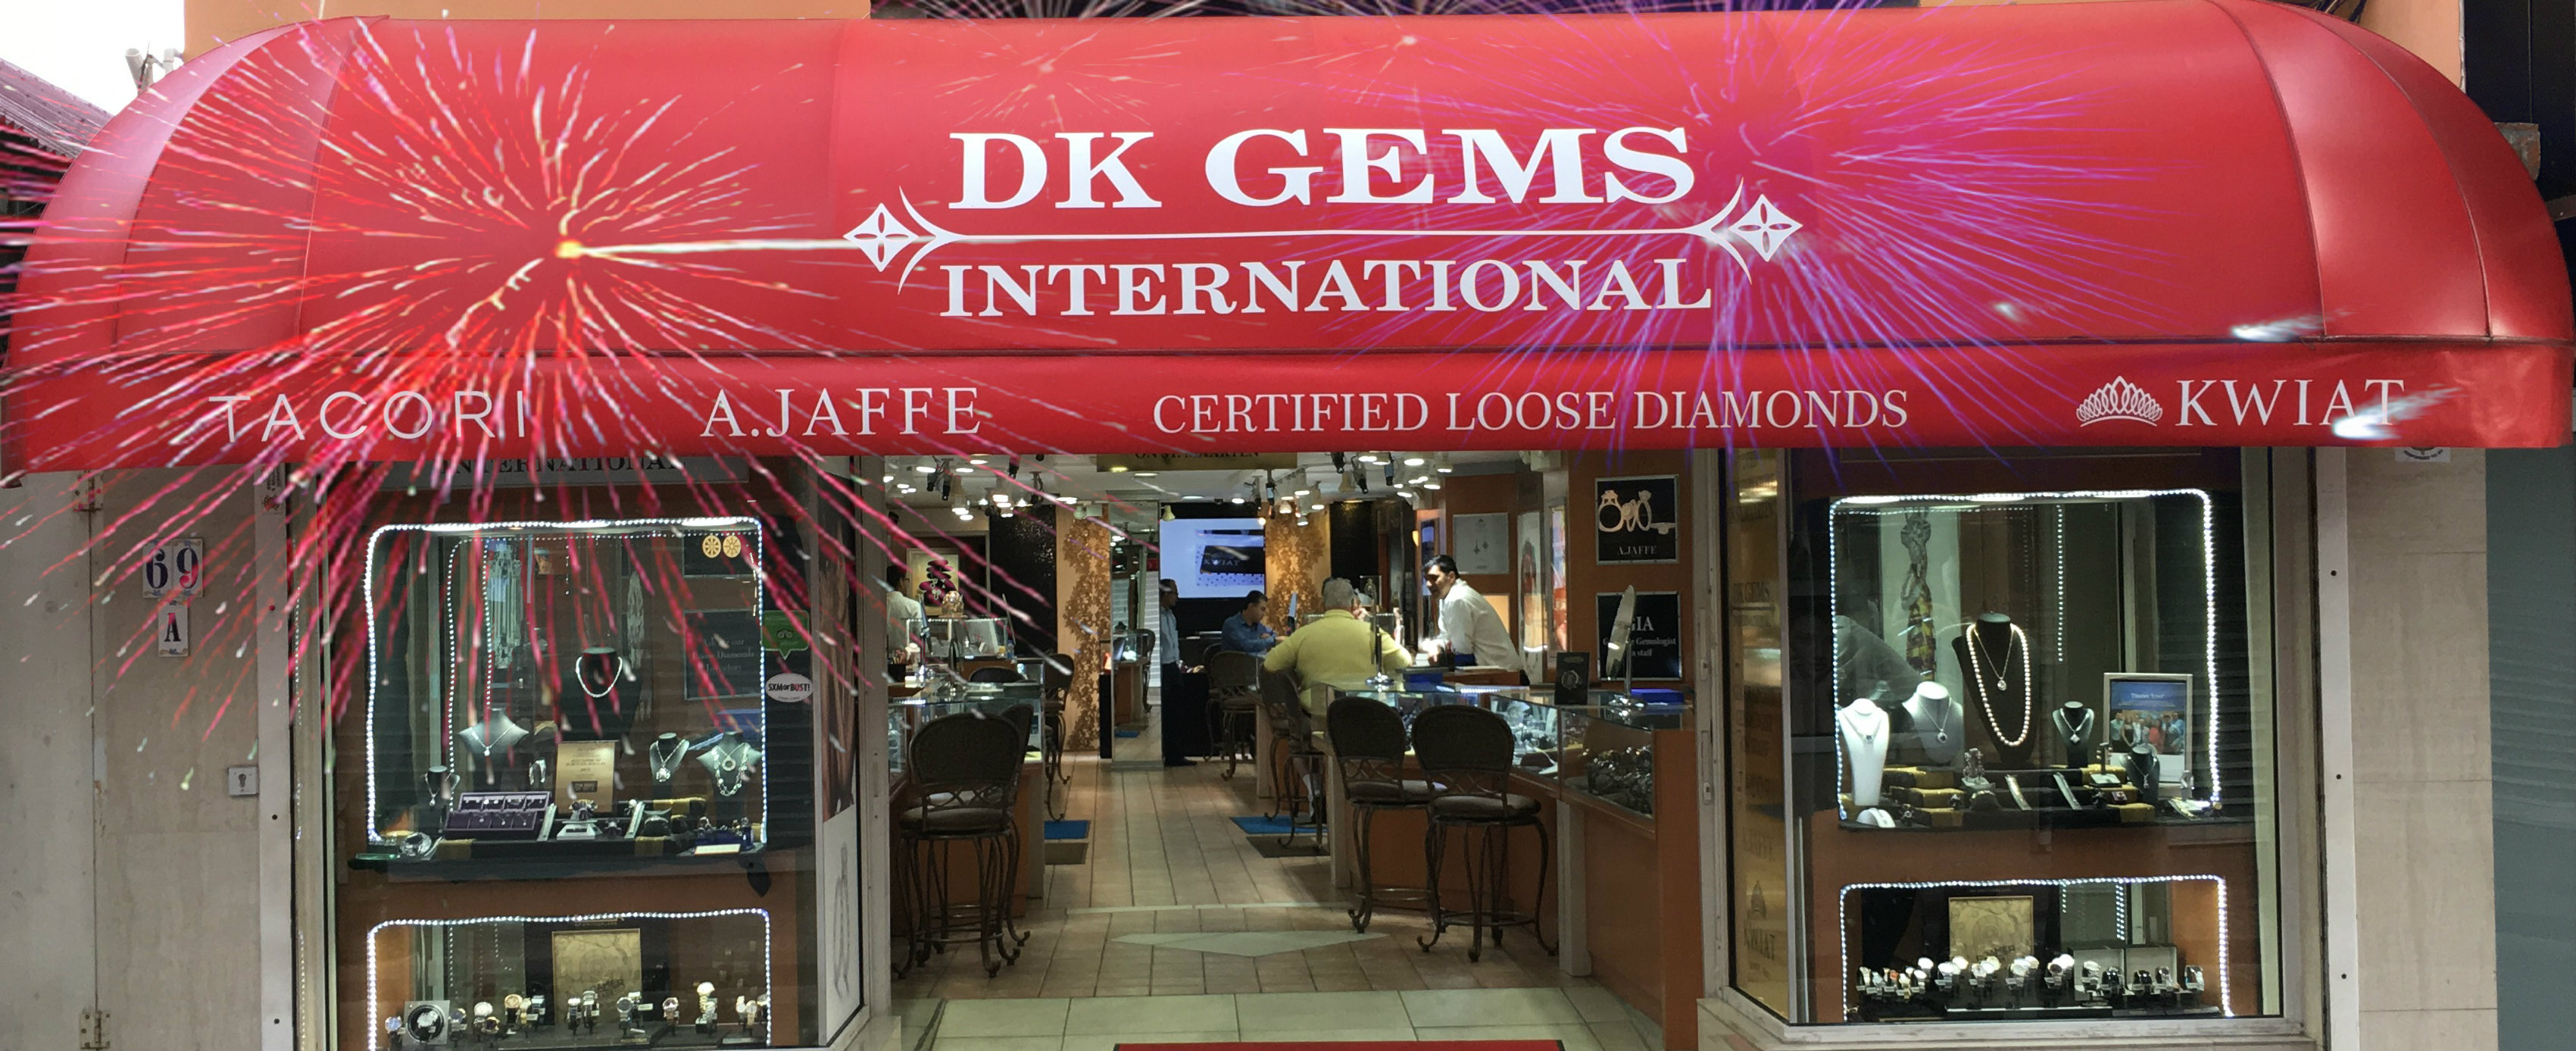 st maarten jewelry DK Gems International VOTED BEST St Maarten Jewelry stores happy fireworks